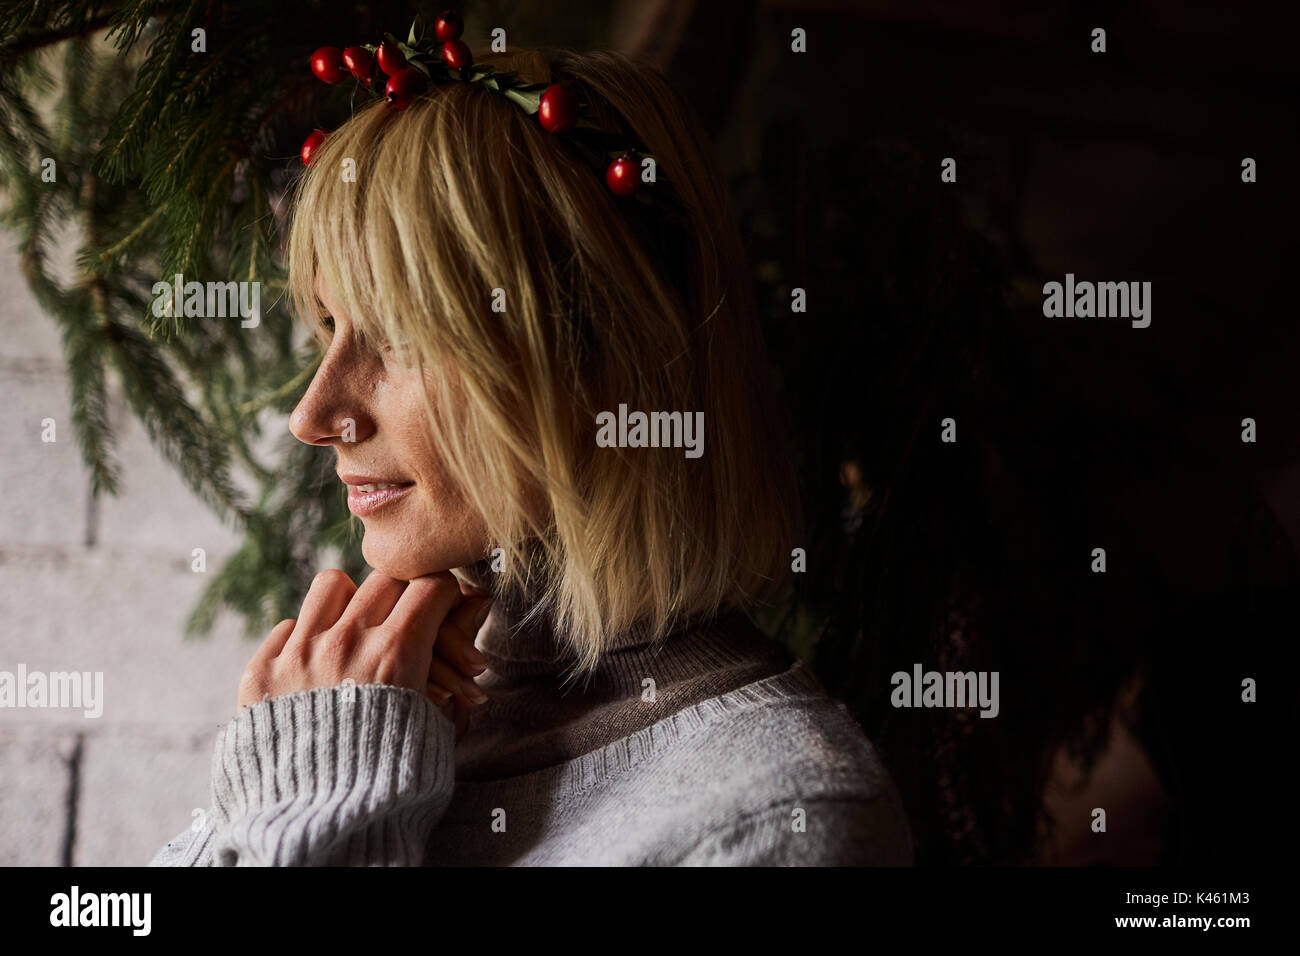 Blond woman smiling, headdress, garland with rose hips, profile, - Stock Image